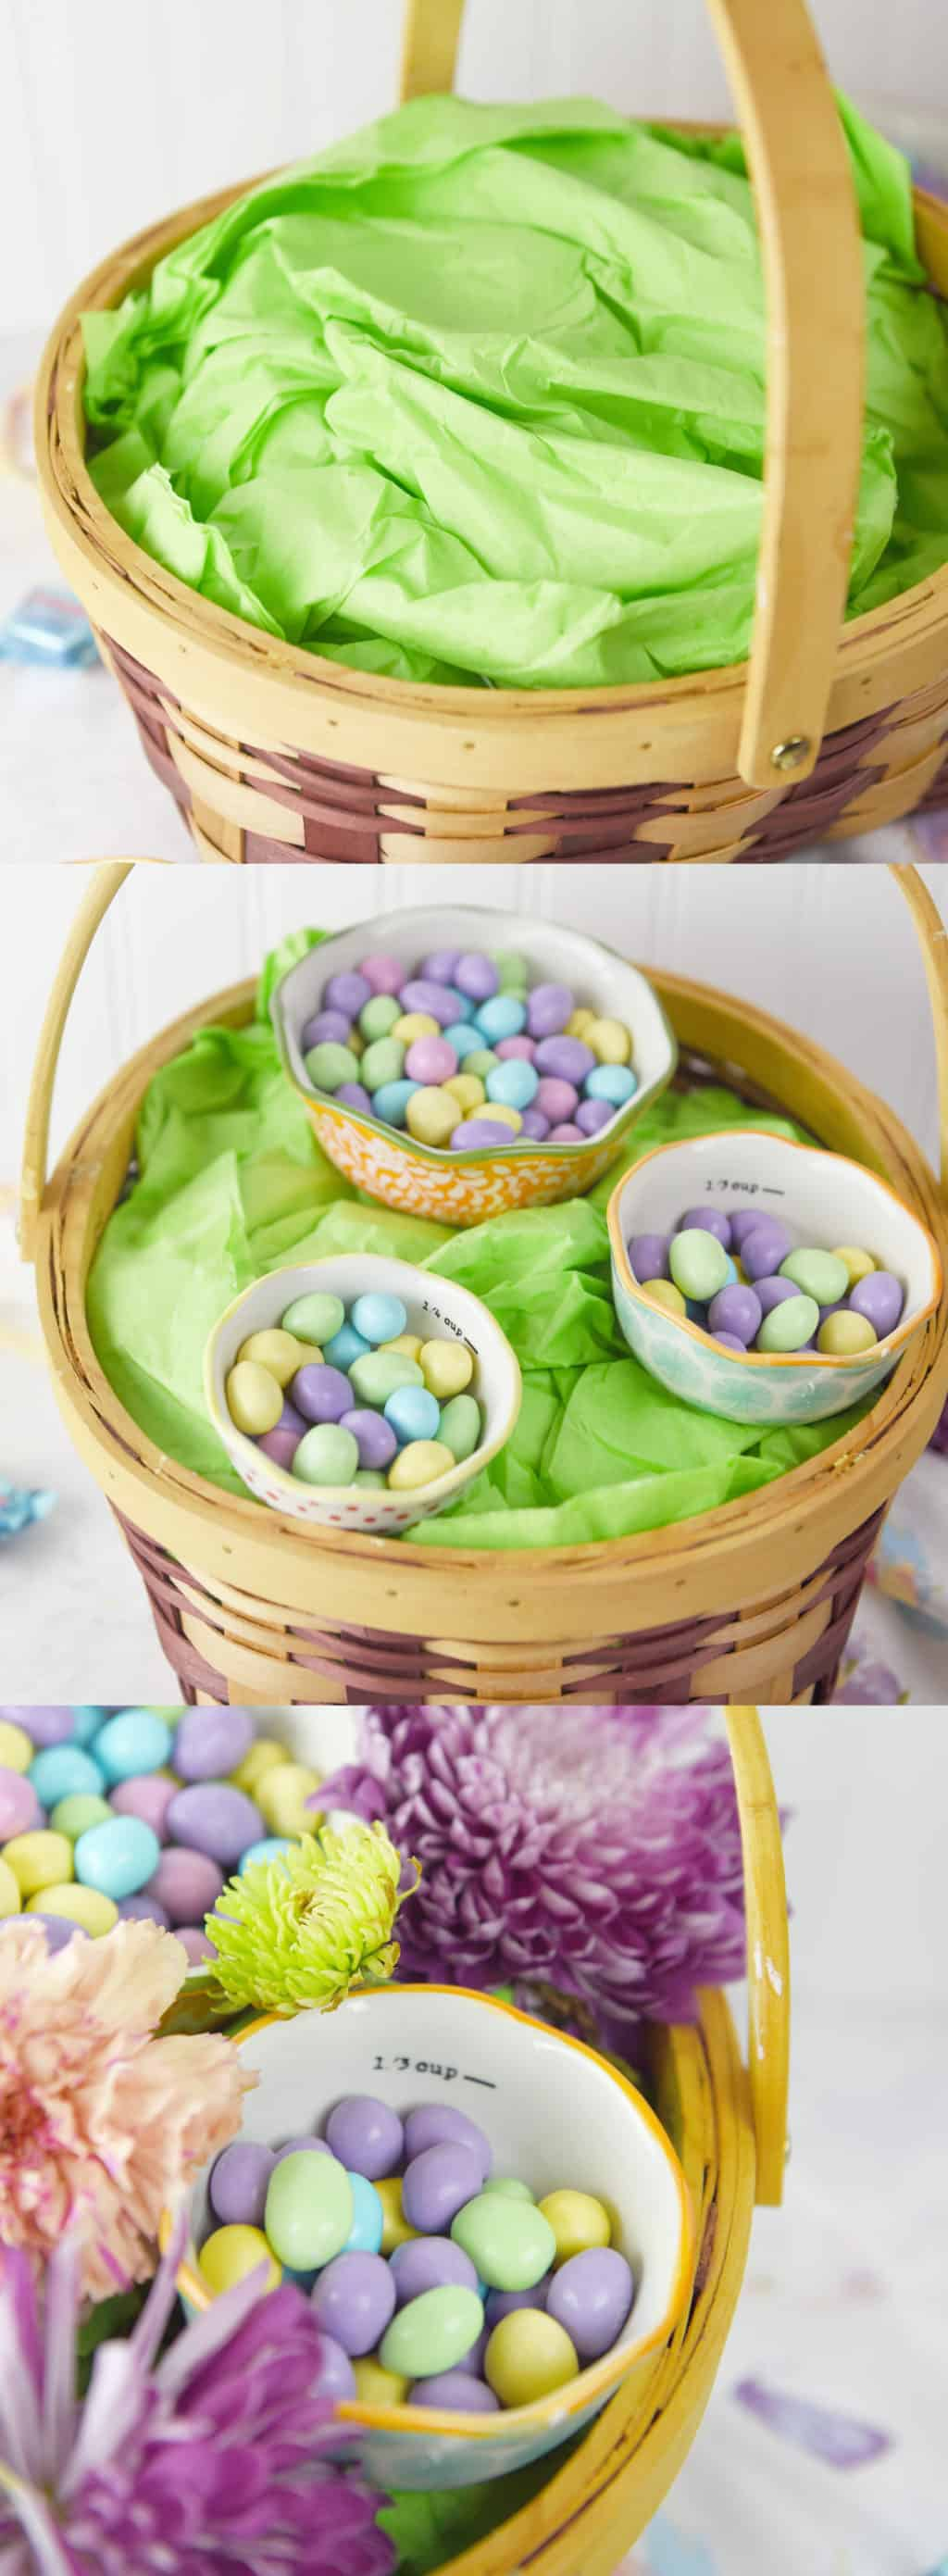 Floral & Candy Easter Basket Idea. Such a fun Easter basket or centerpiece!